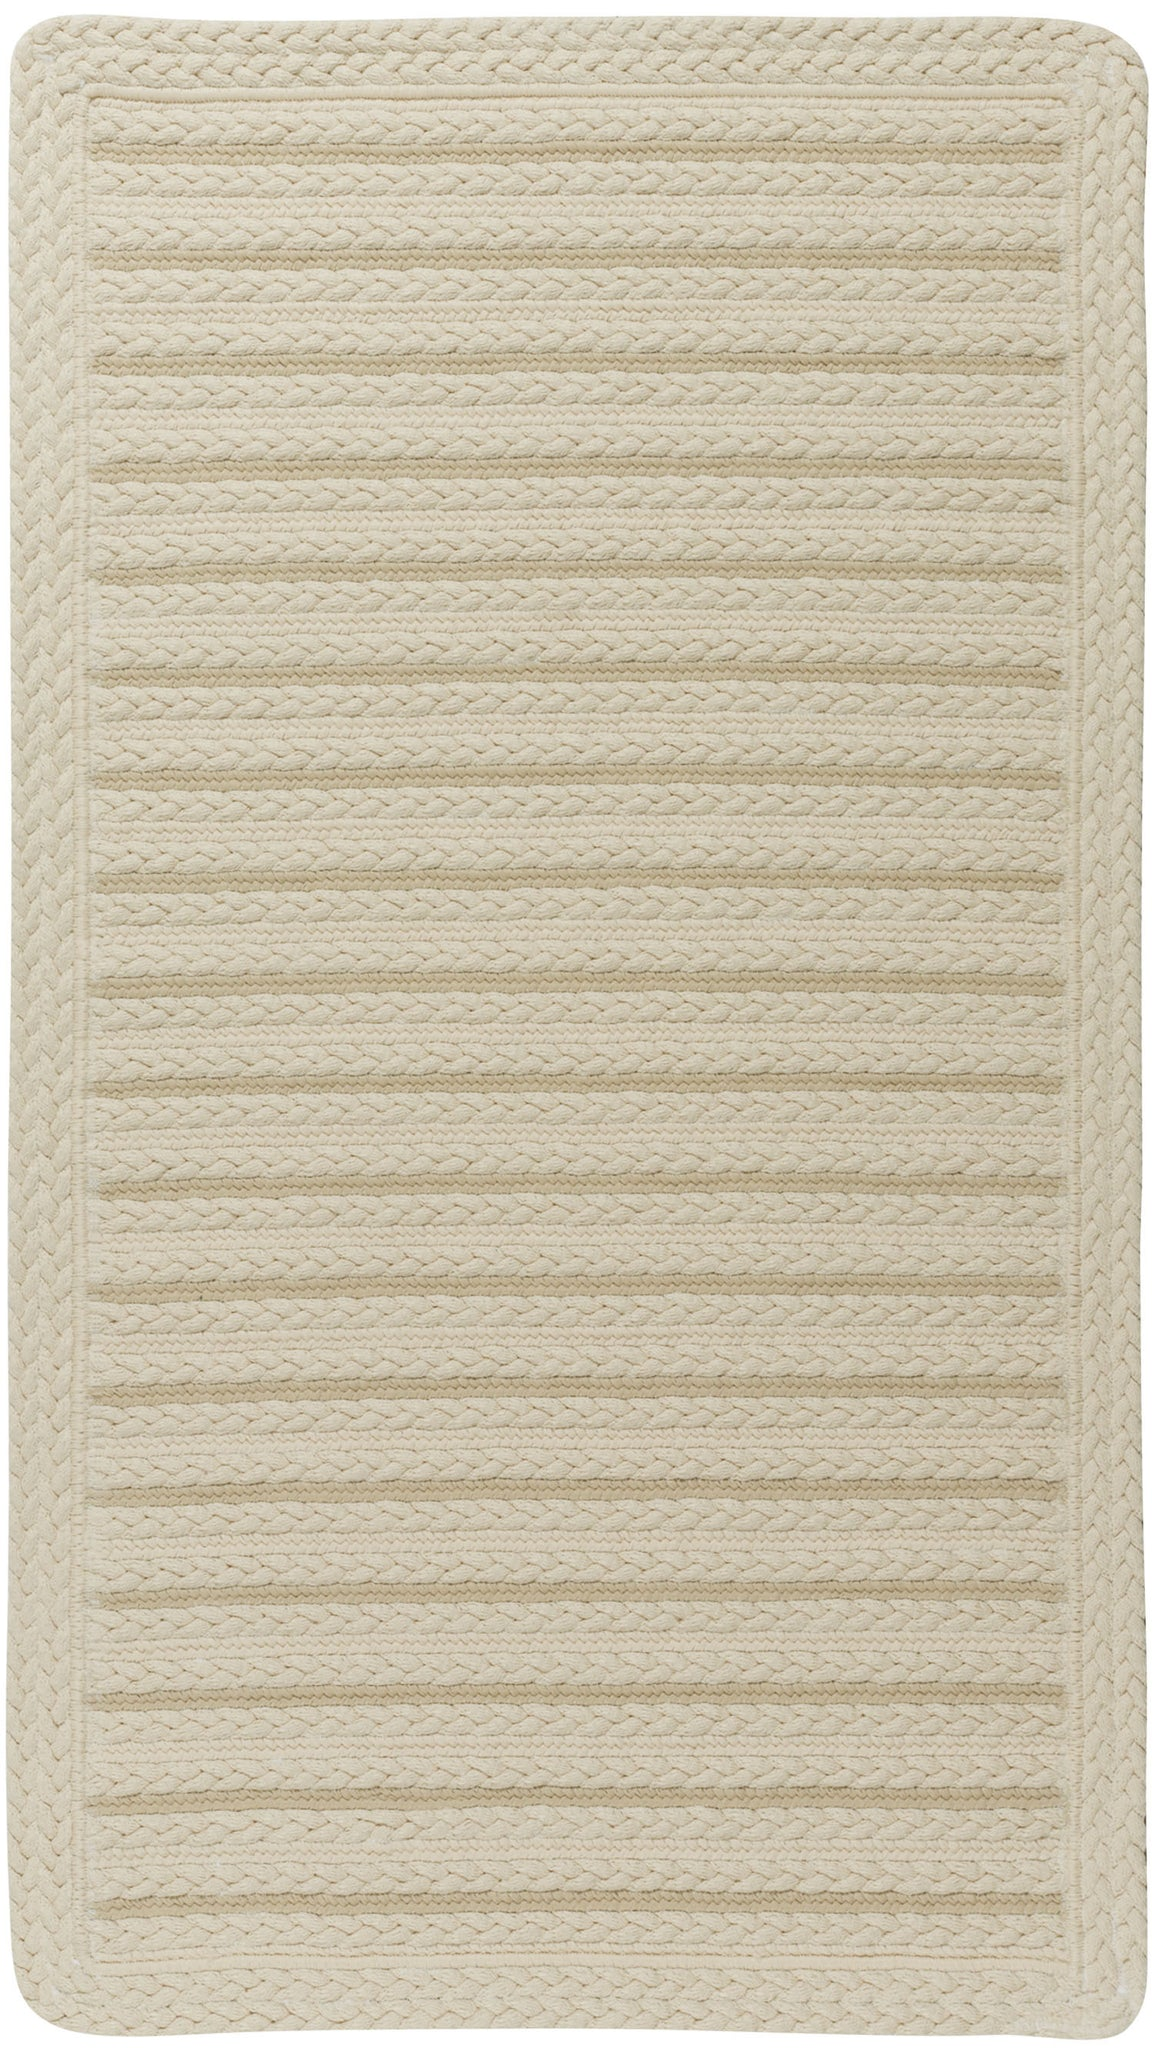 Capel Boathouse 0257 Cream 600 Area Rug main image